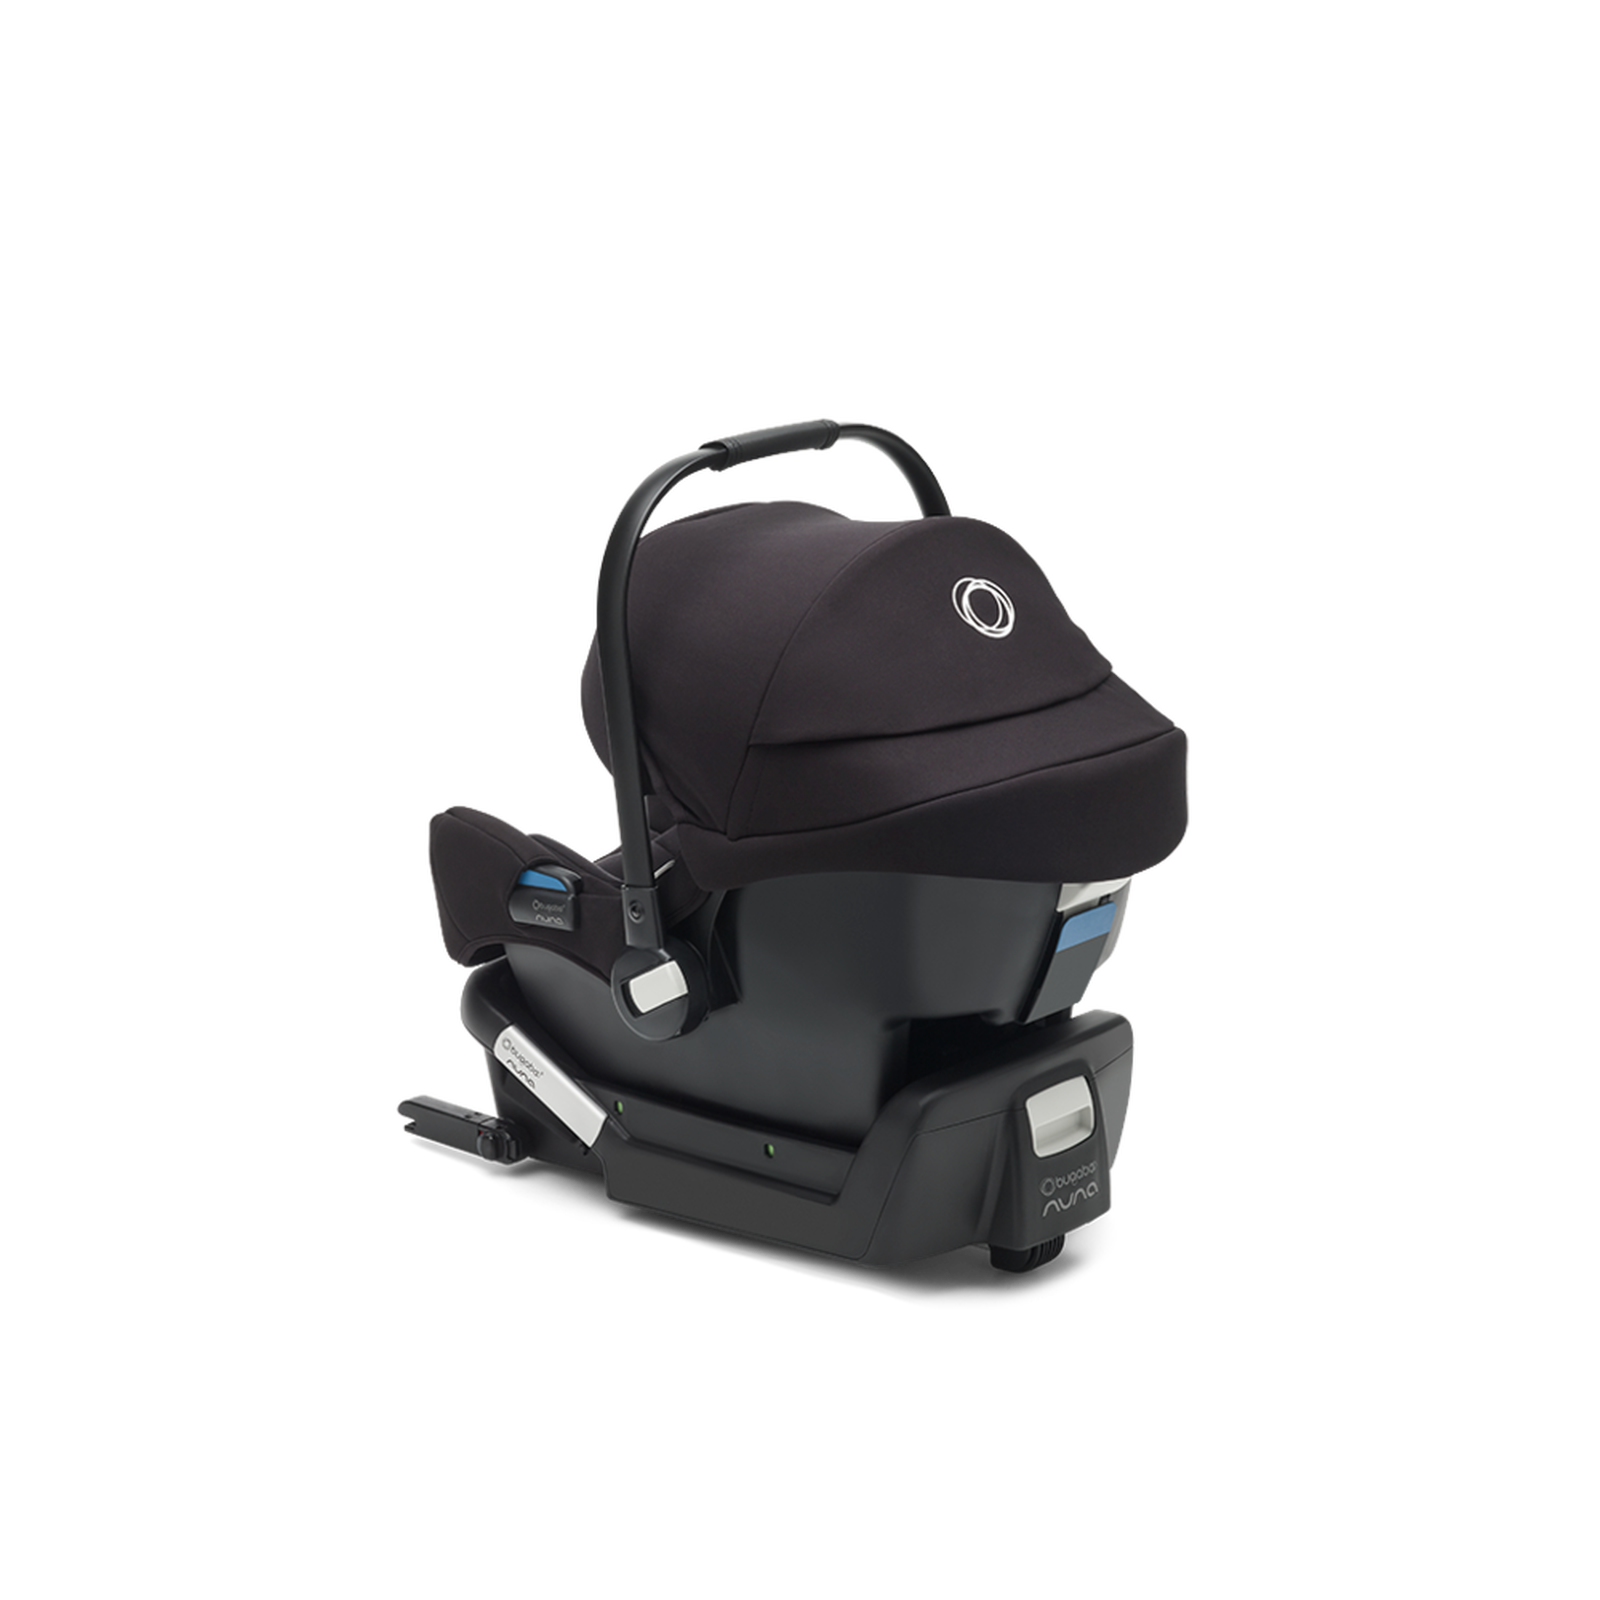 Bugaboo Turtle by Nuna Isofix base